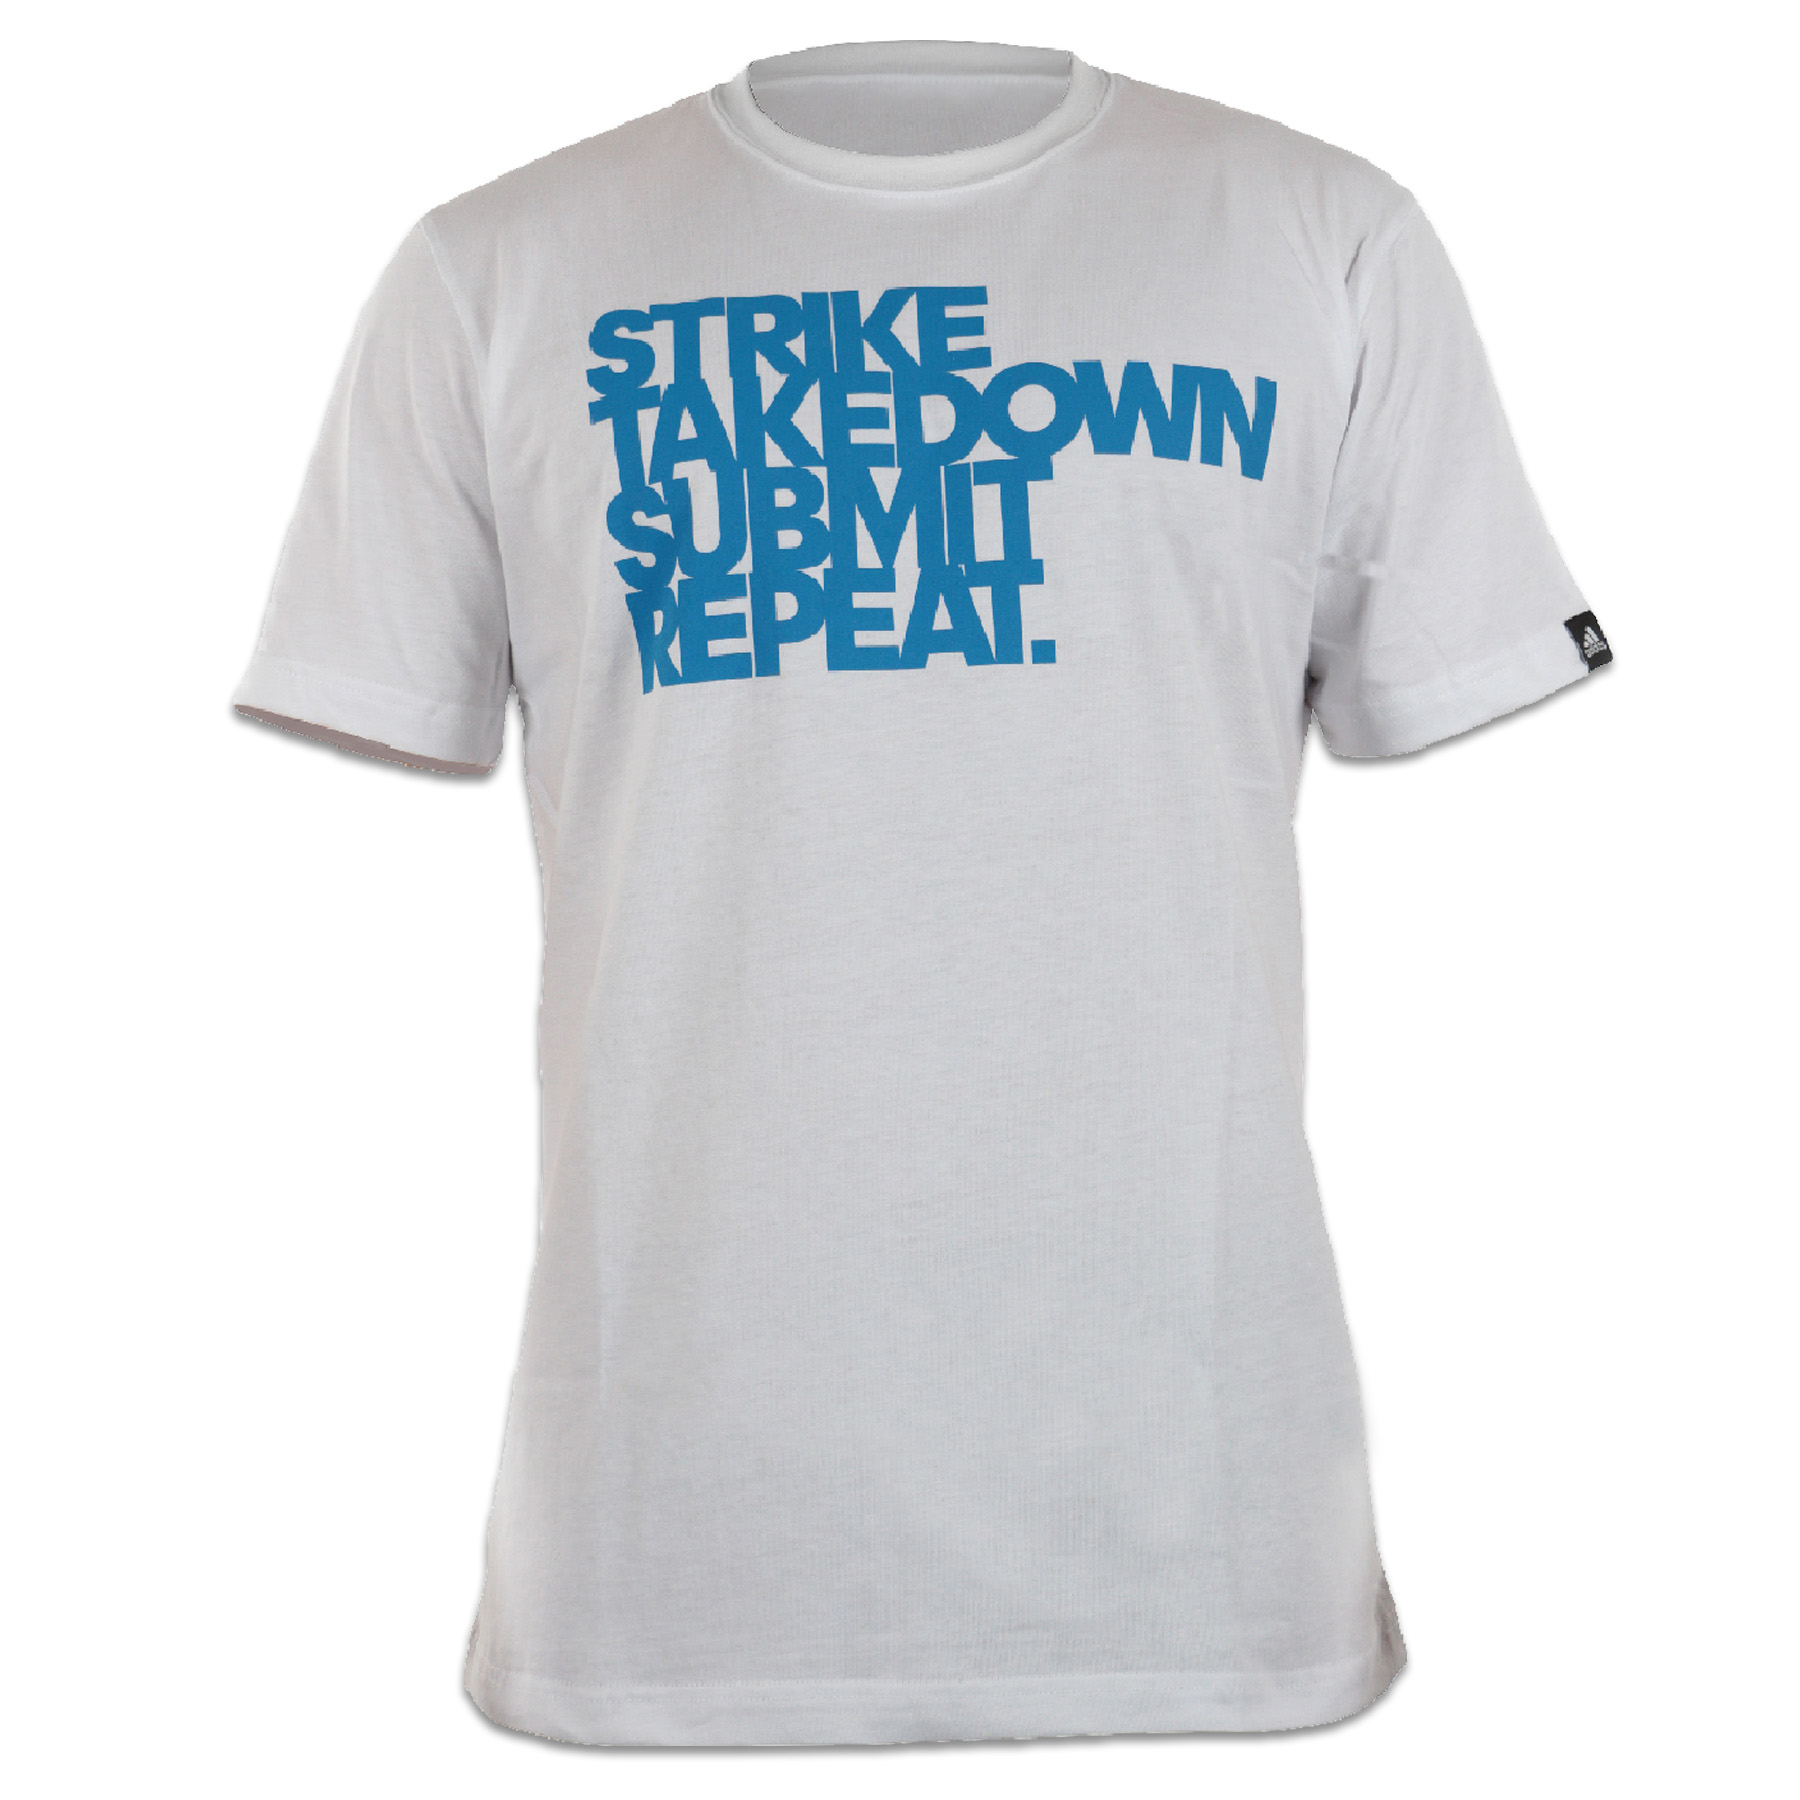 T-shirt Adidas Strike leisure